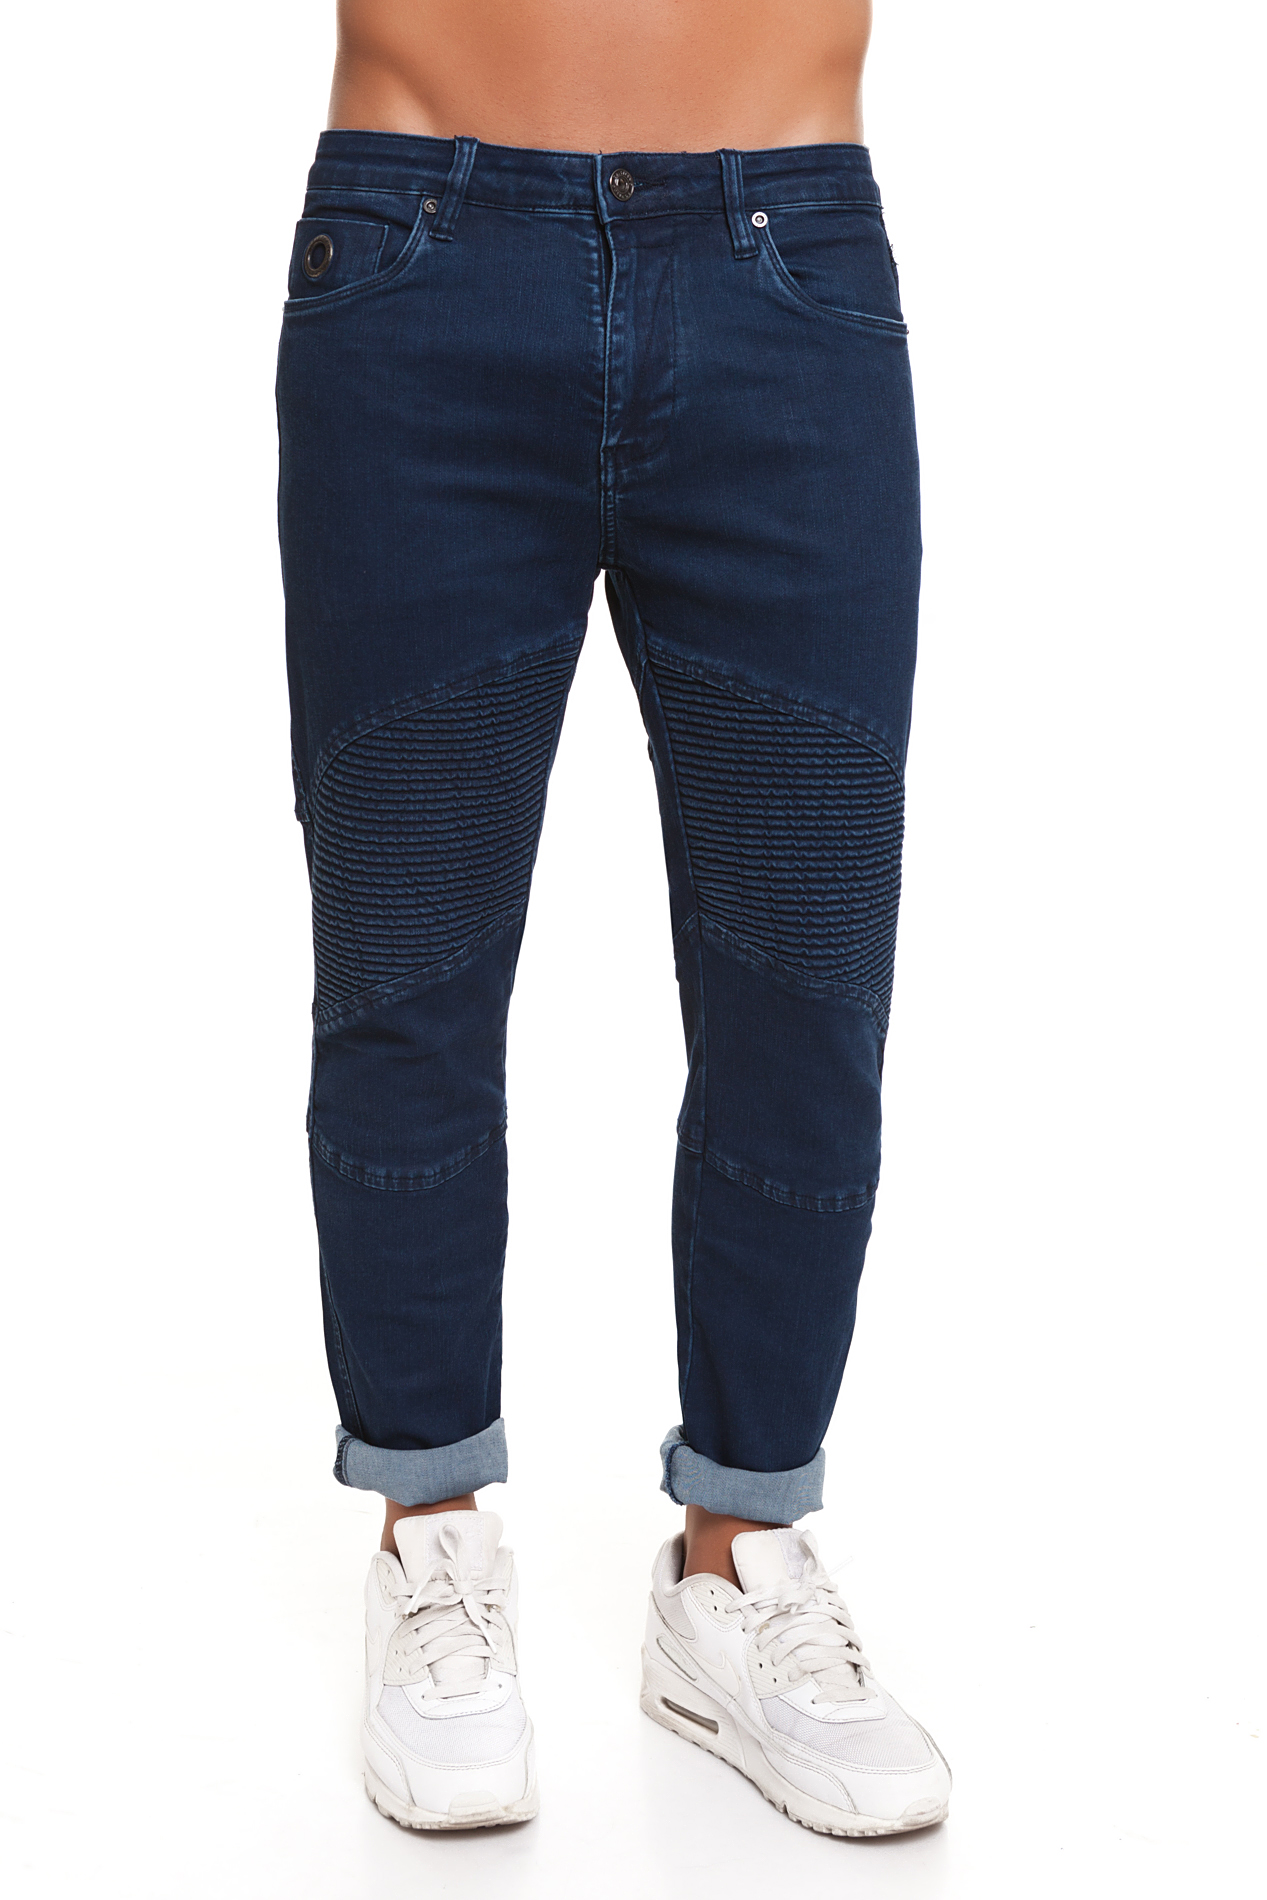 CR7 Jeans For Men Dark Blue Casual Jeans Casual Slim Straight With Pockets CRD011A